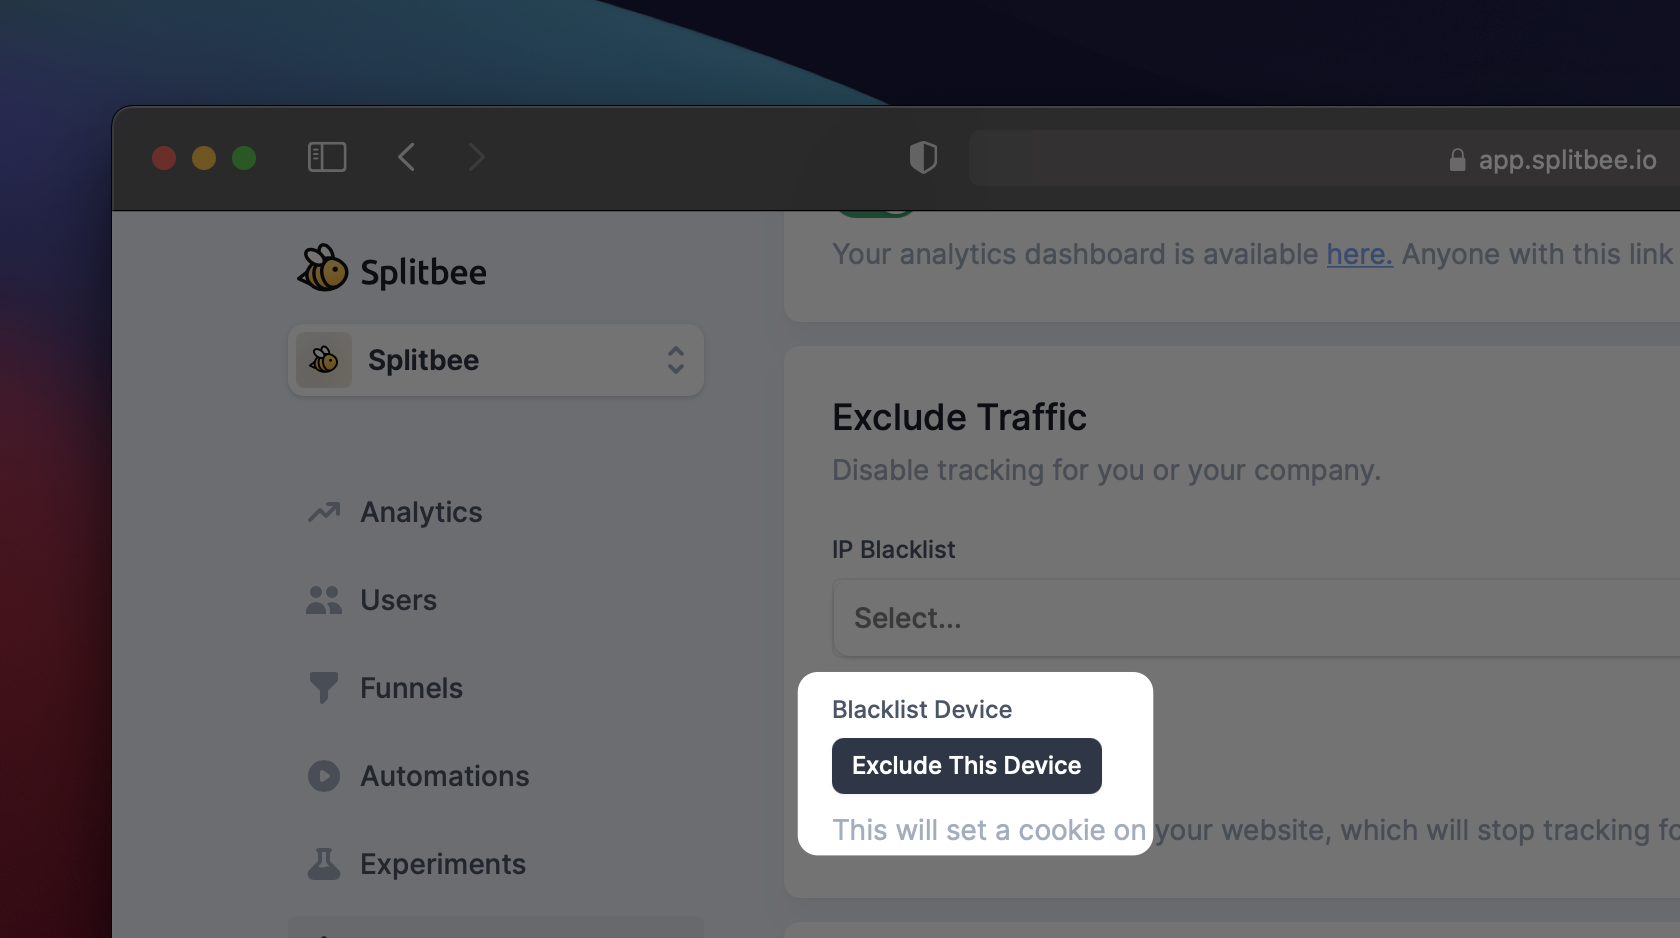 How to exclude a device from Splitbee